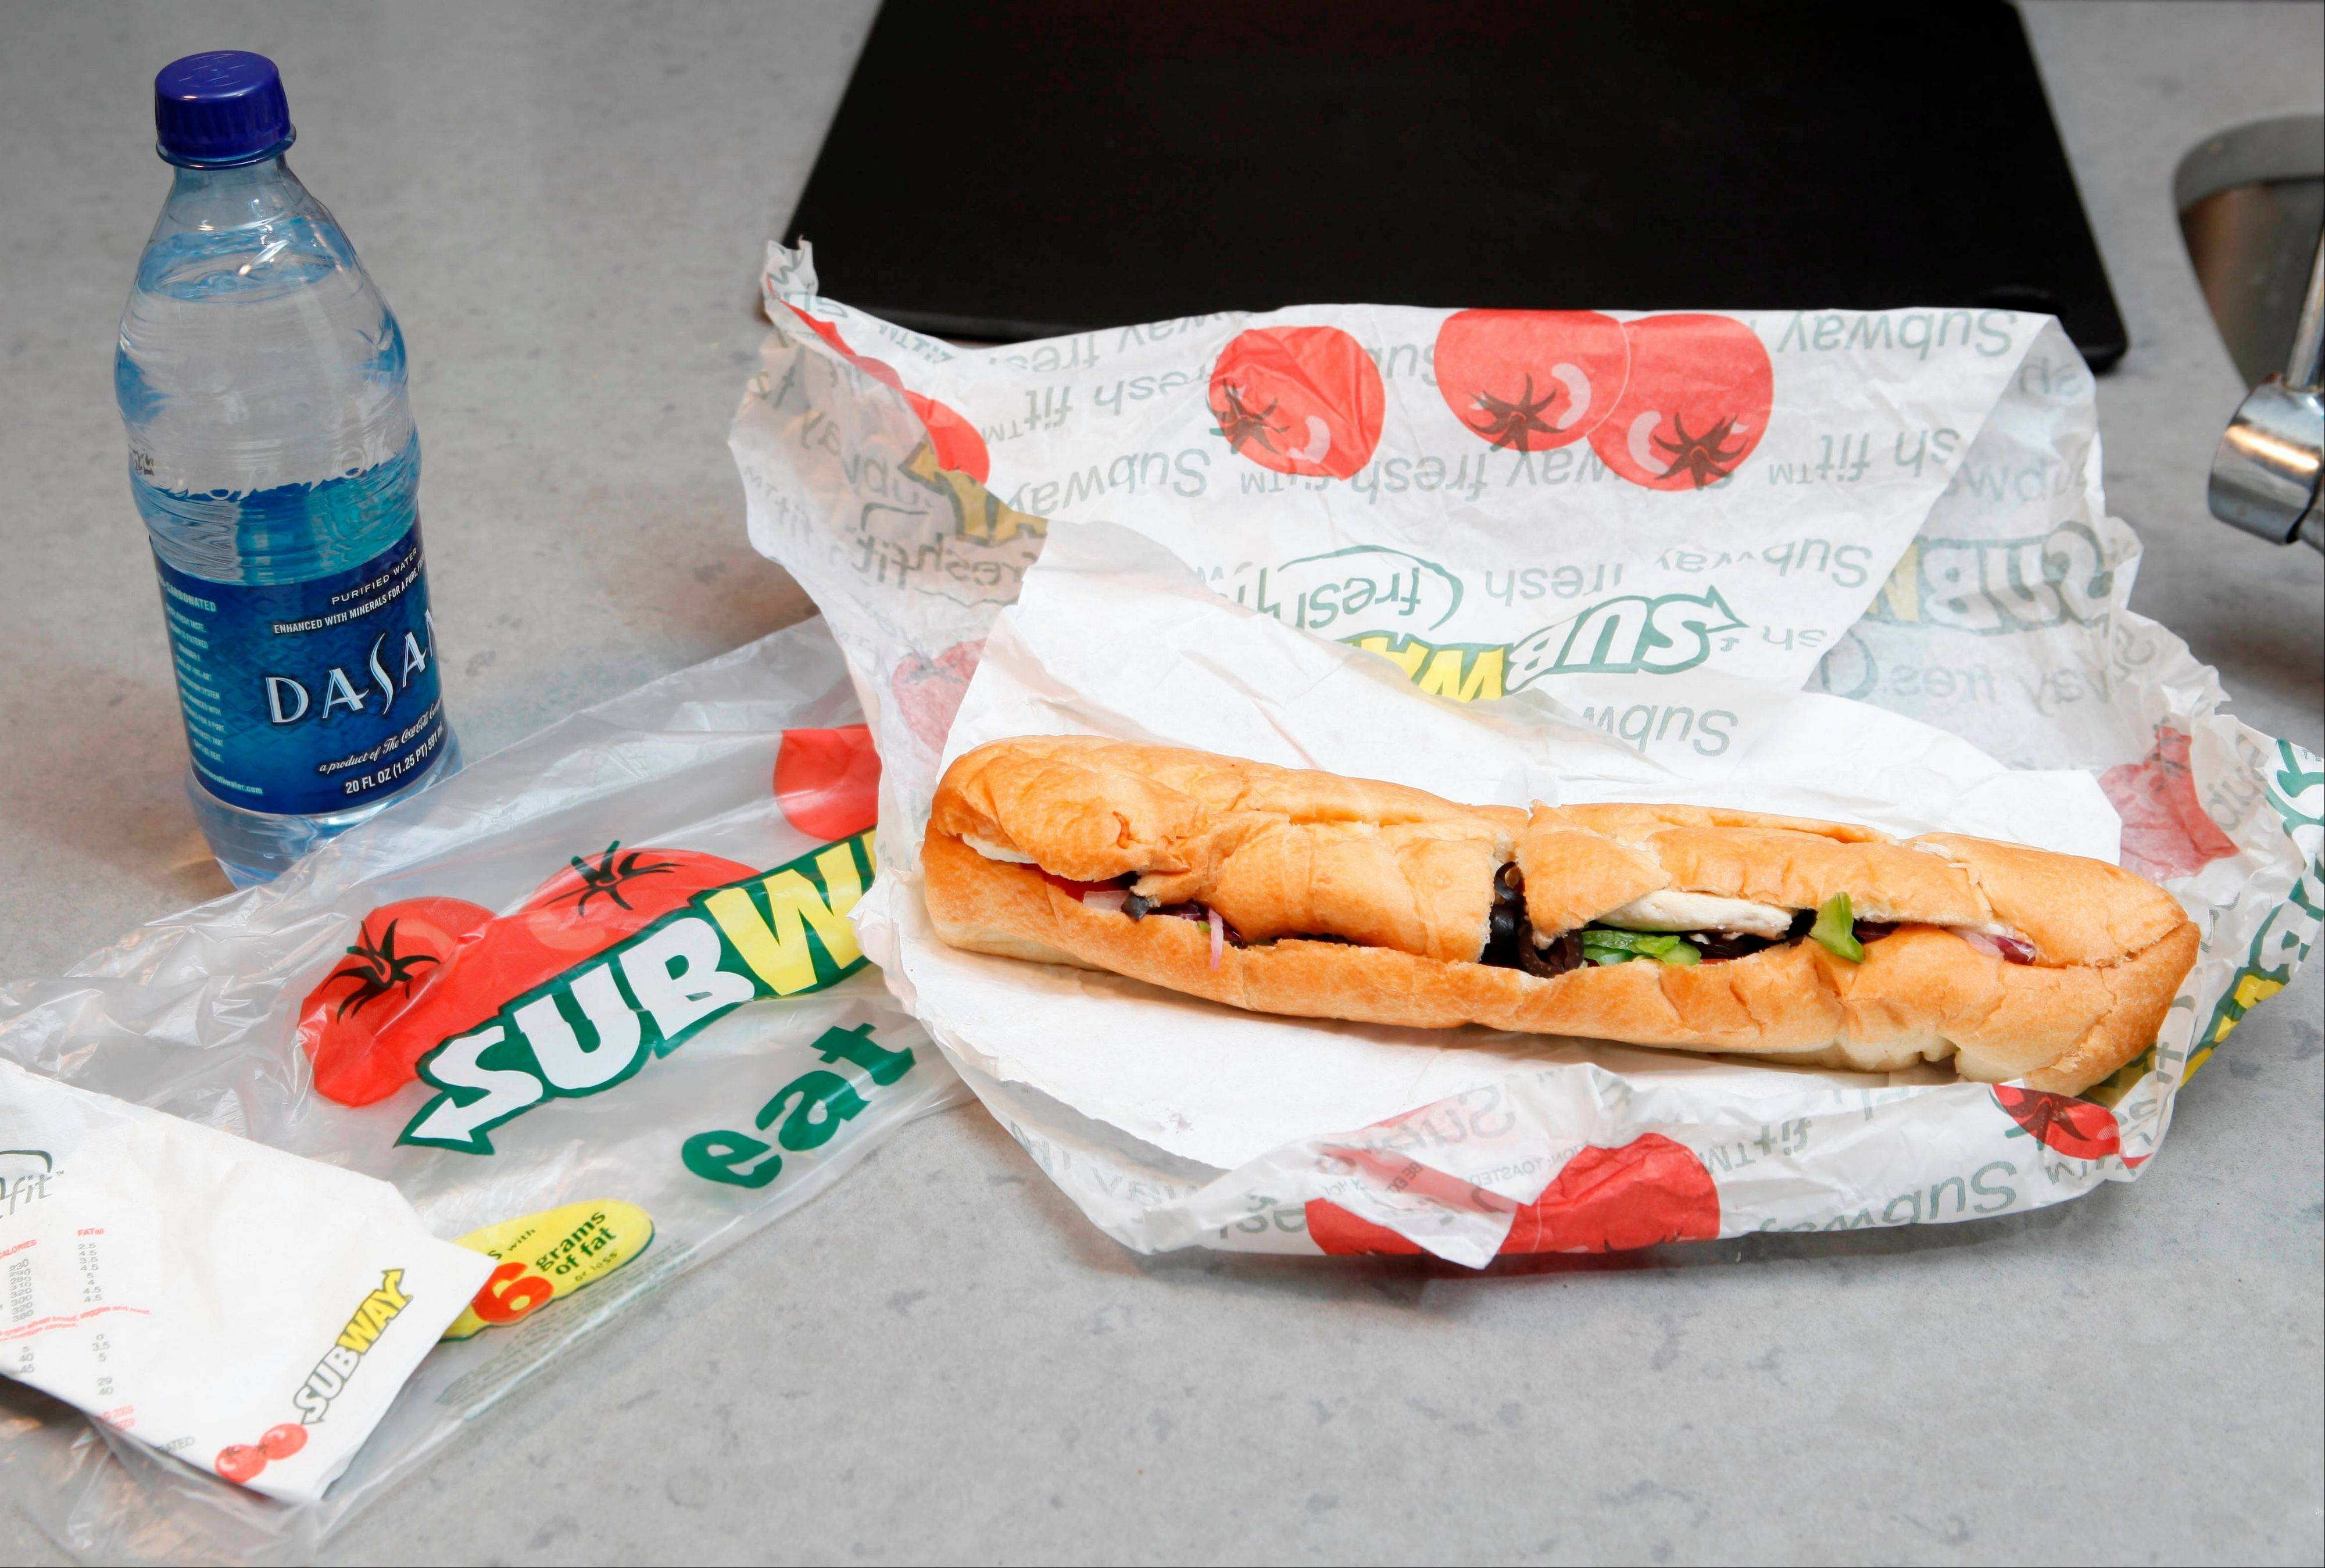 Subway, the world�s largest fast food chain, is facing criticism after an Australian man posted a picture on the company�s Facebook page on Jan. 16 of one of its famous sandwiches next to a tape measure that seems to shows it�s not as long as promised.